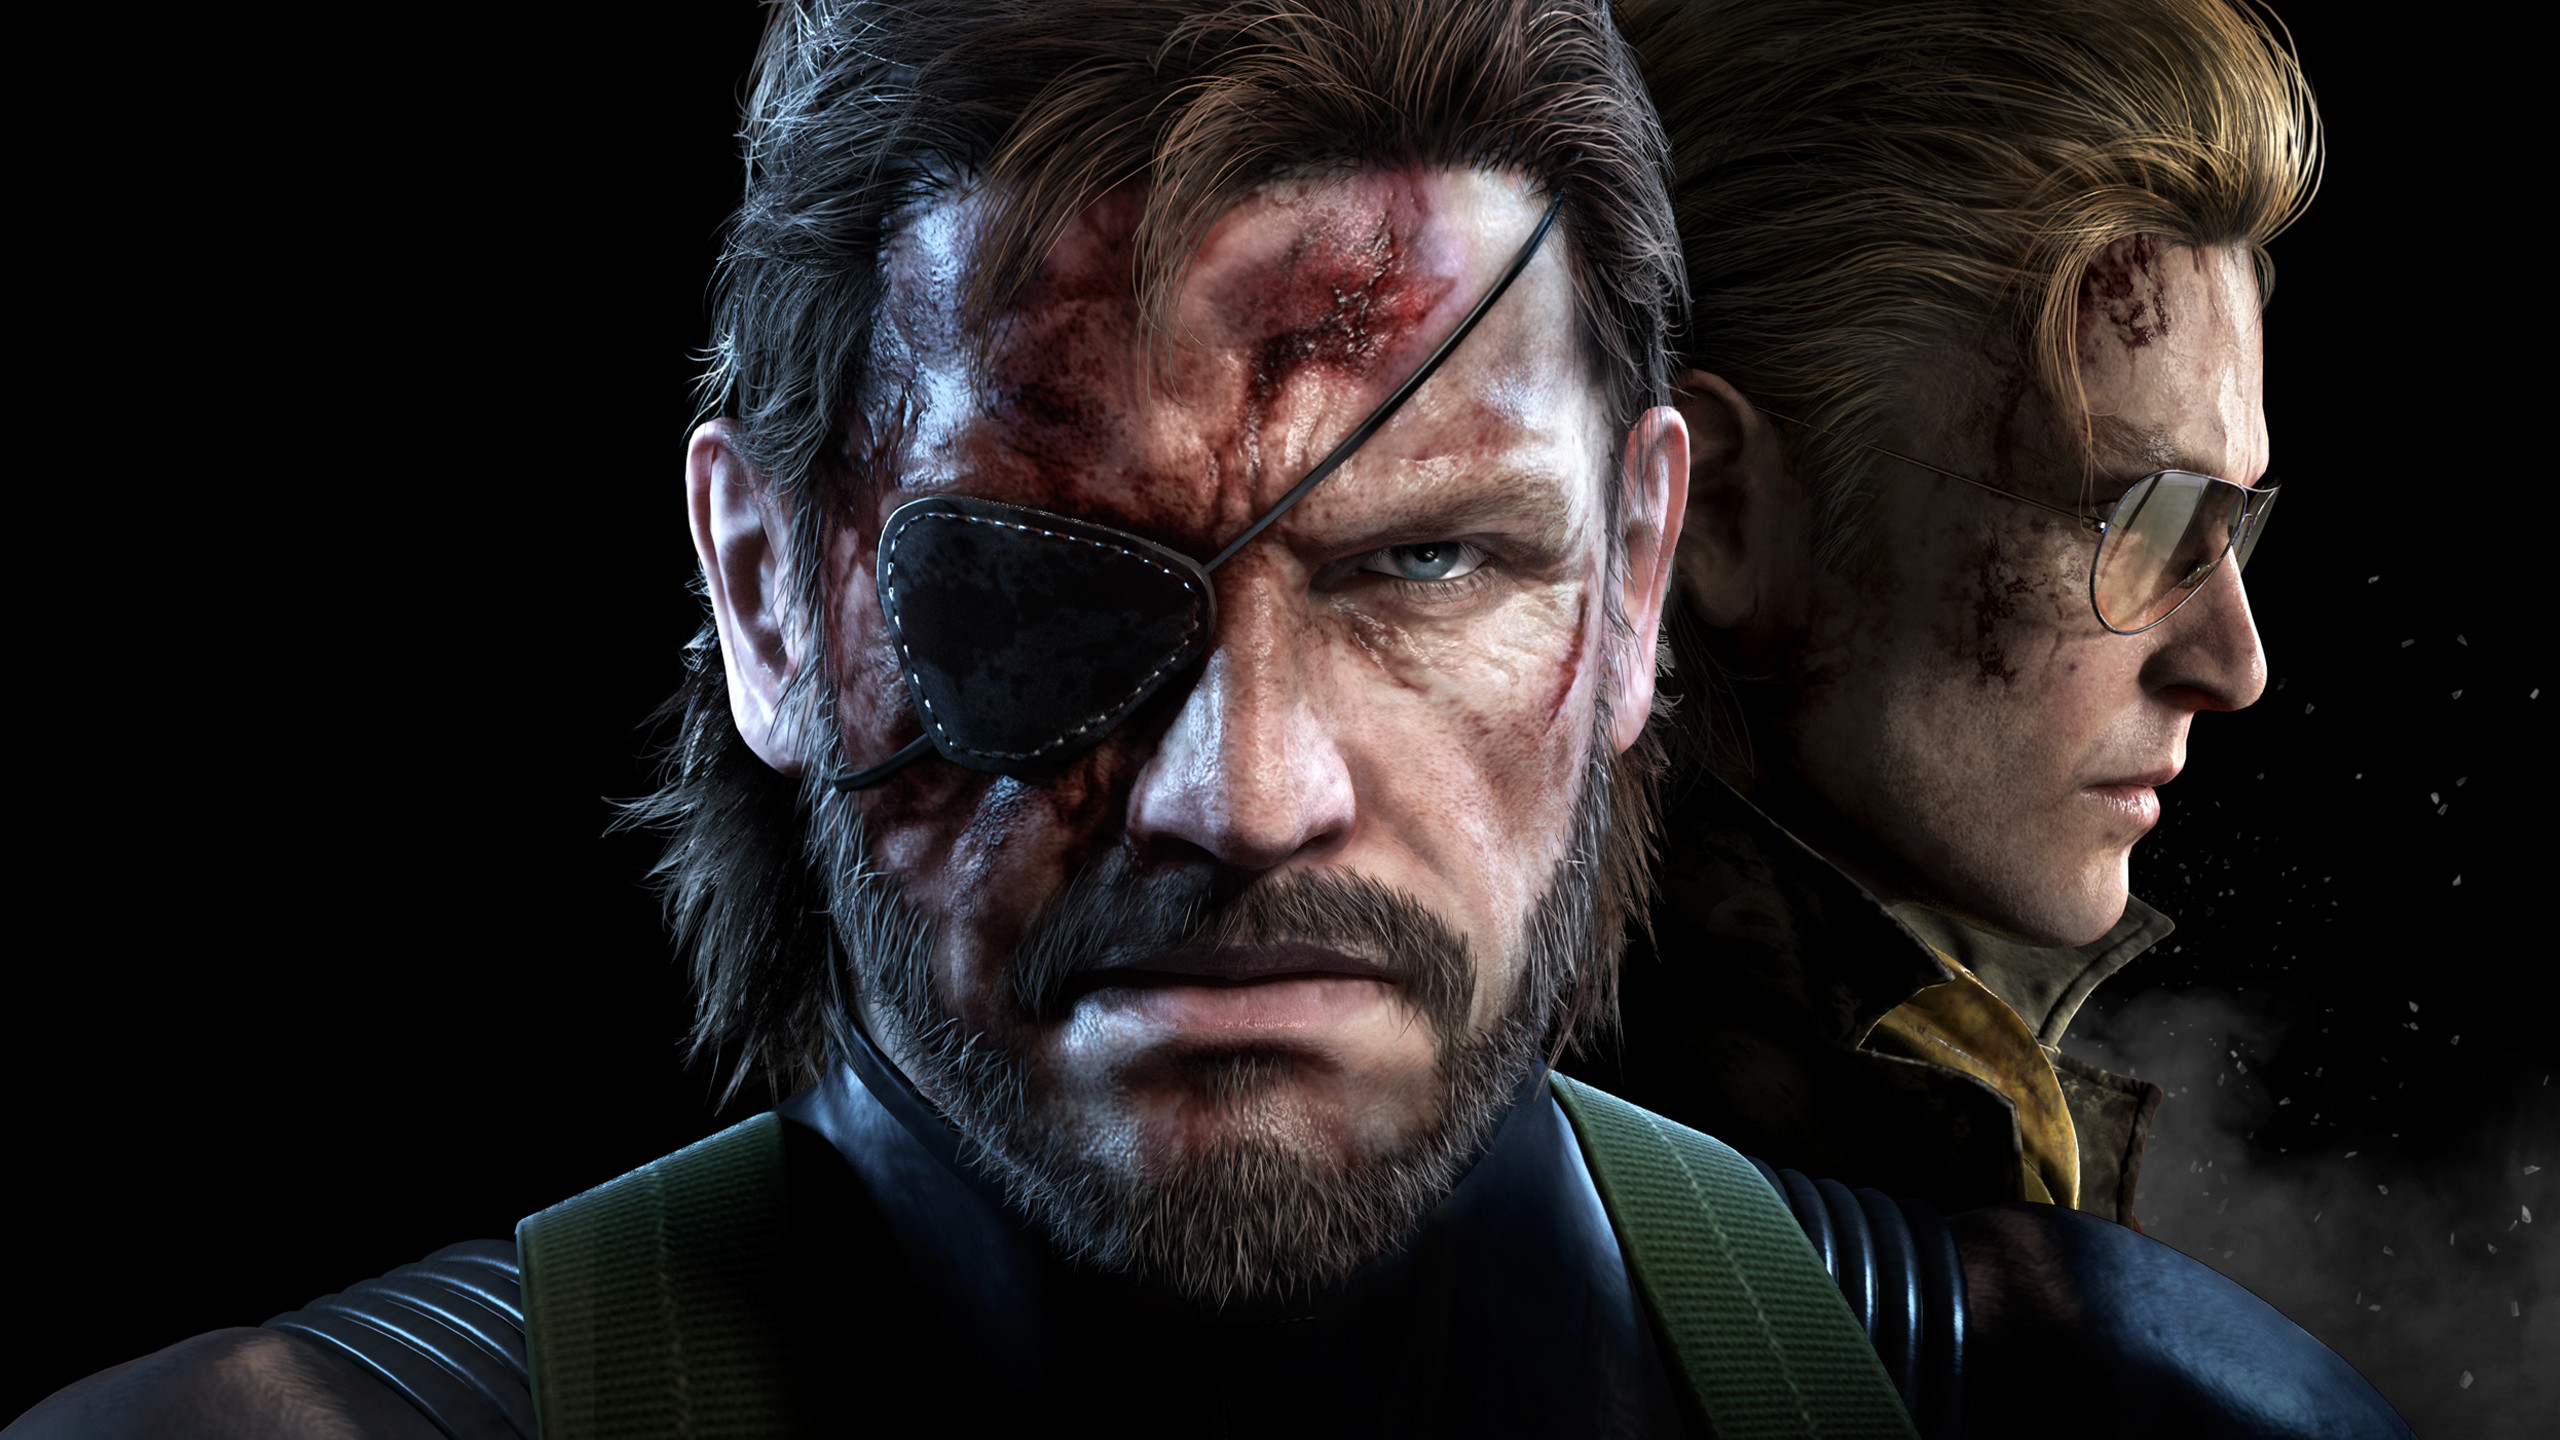 Metal Gear Solid Hd Wallpapers 66 Images